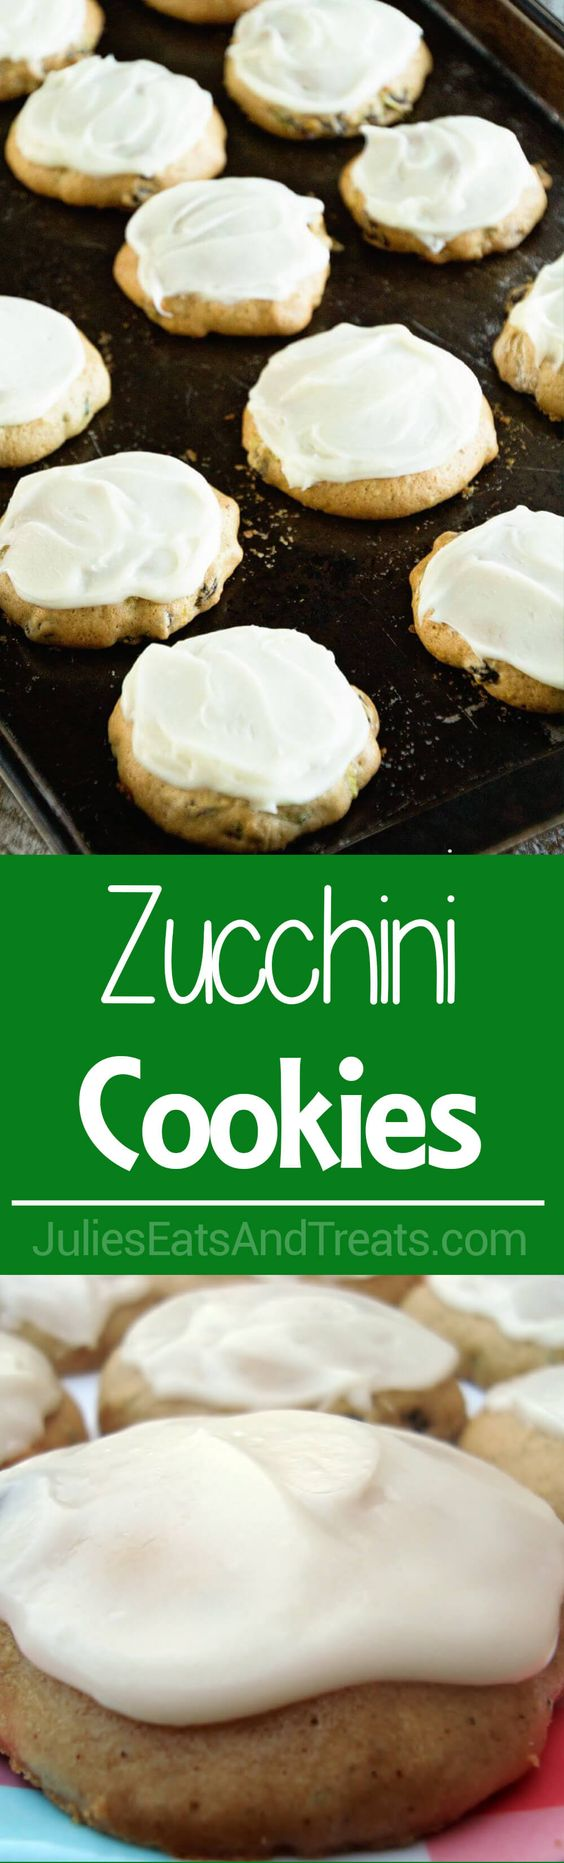 Zucchini Cookies with Cream Cheese Frosting Recipe ~ Soft, Delicious Cookies Stuffed with Zucchini and Raisins then Frosted with Cream Cheese Frosting!